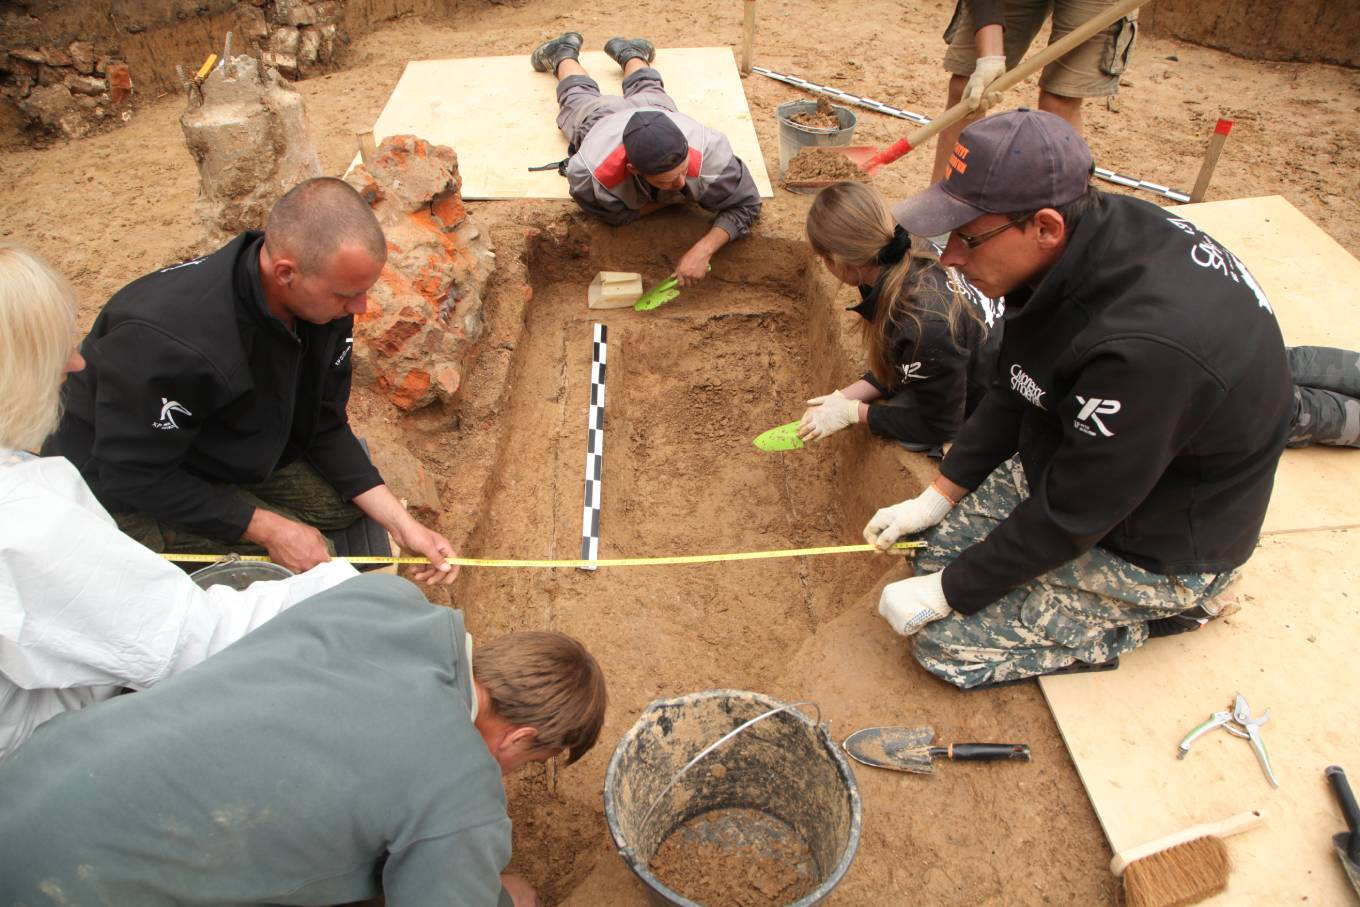 Smolensk 1812-2019 expedition finds General Gudin's grave